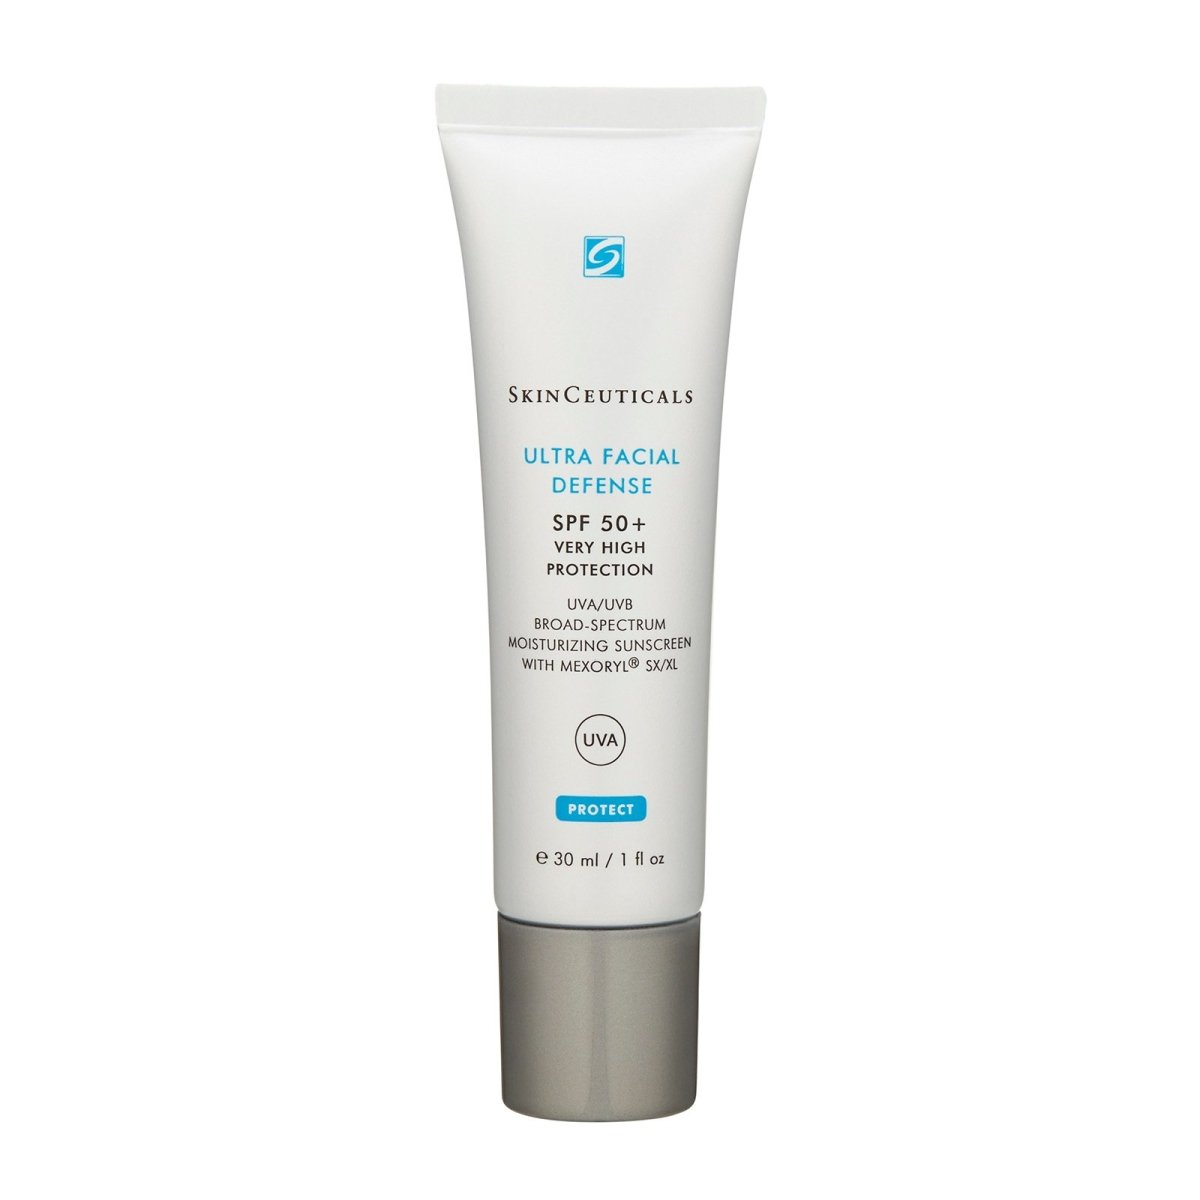 SkinCeuticals Ultra Facial Defense FPS 50 30 ml